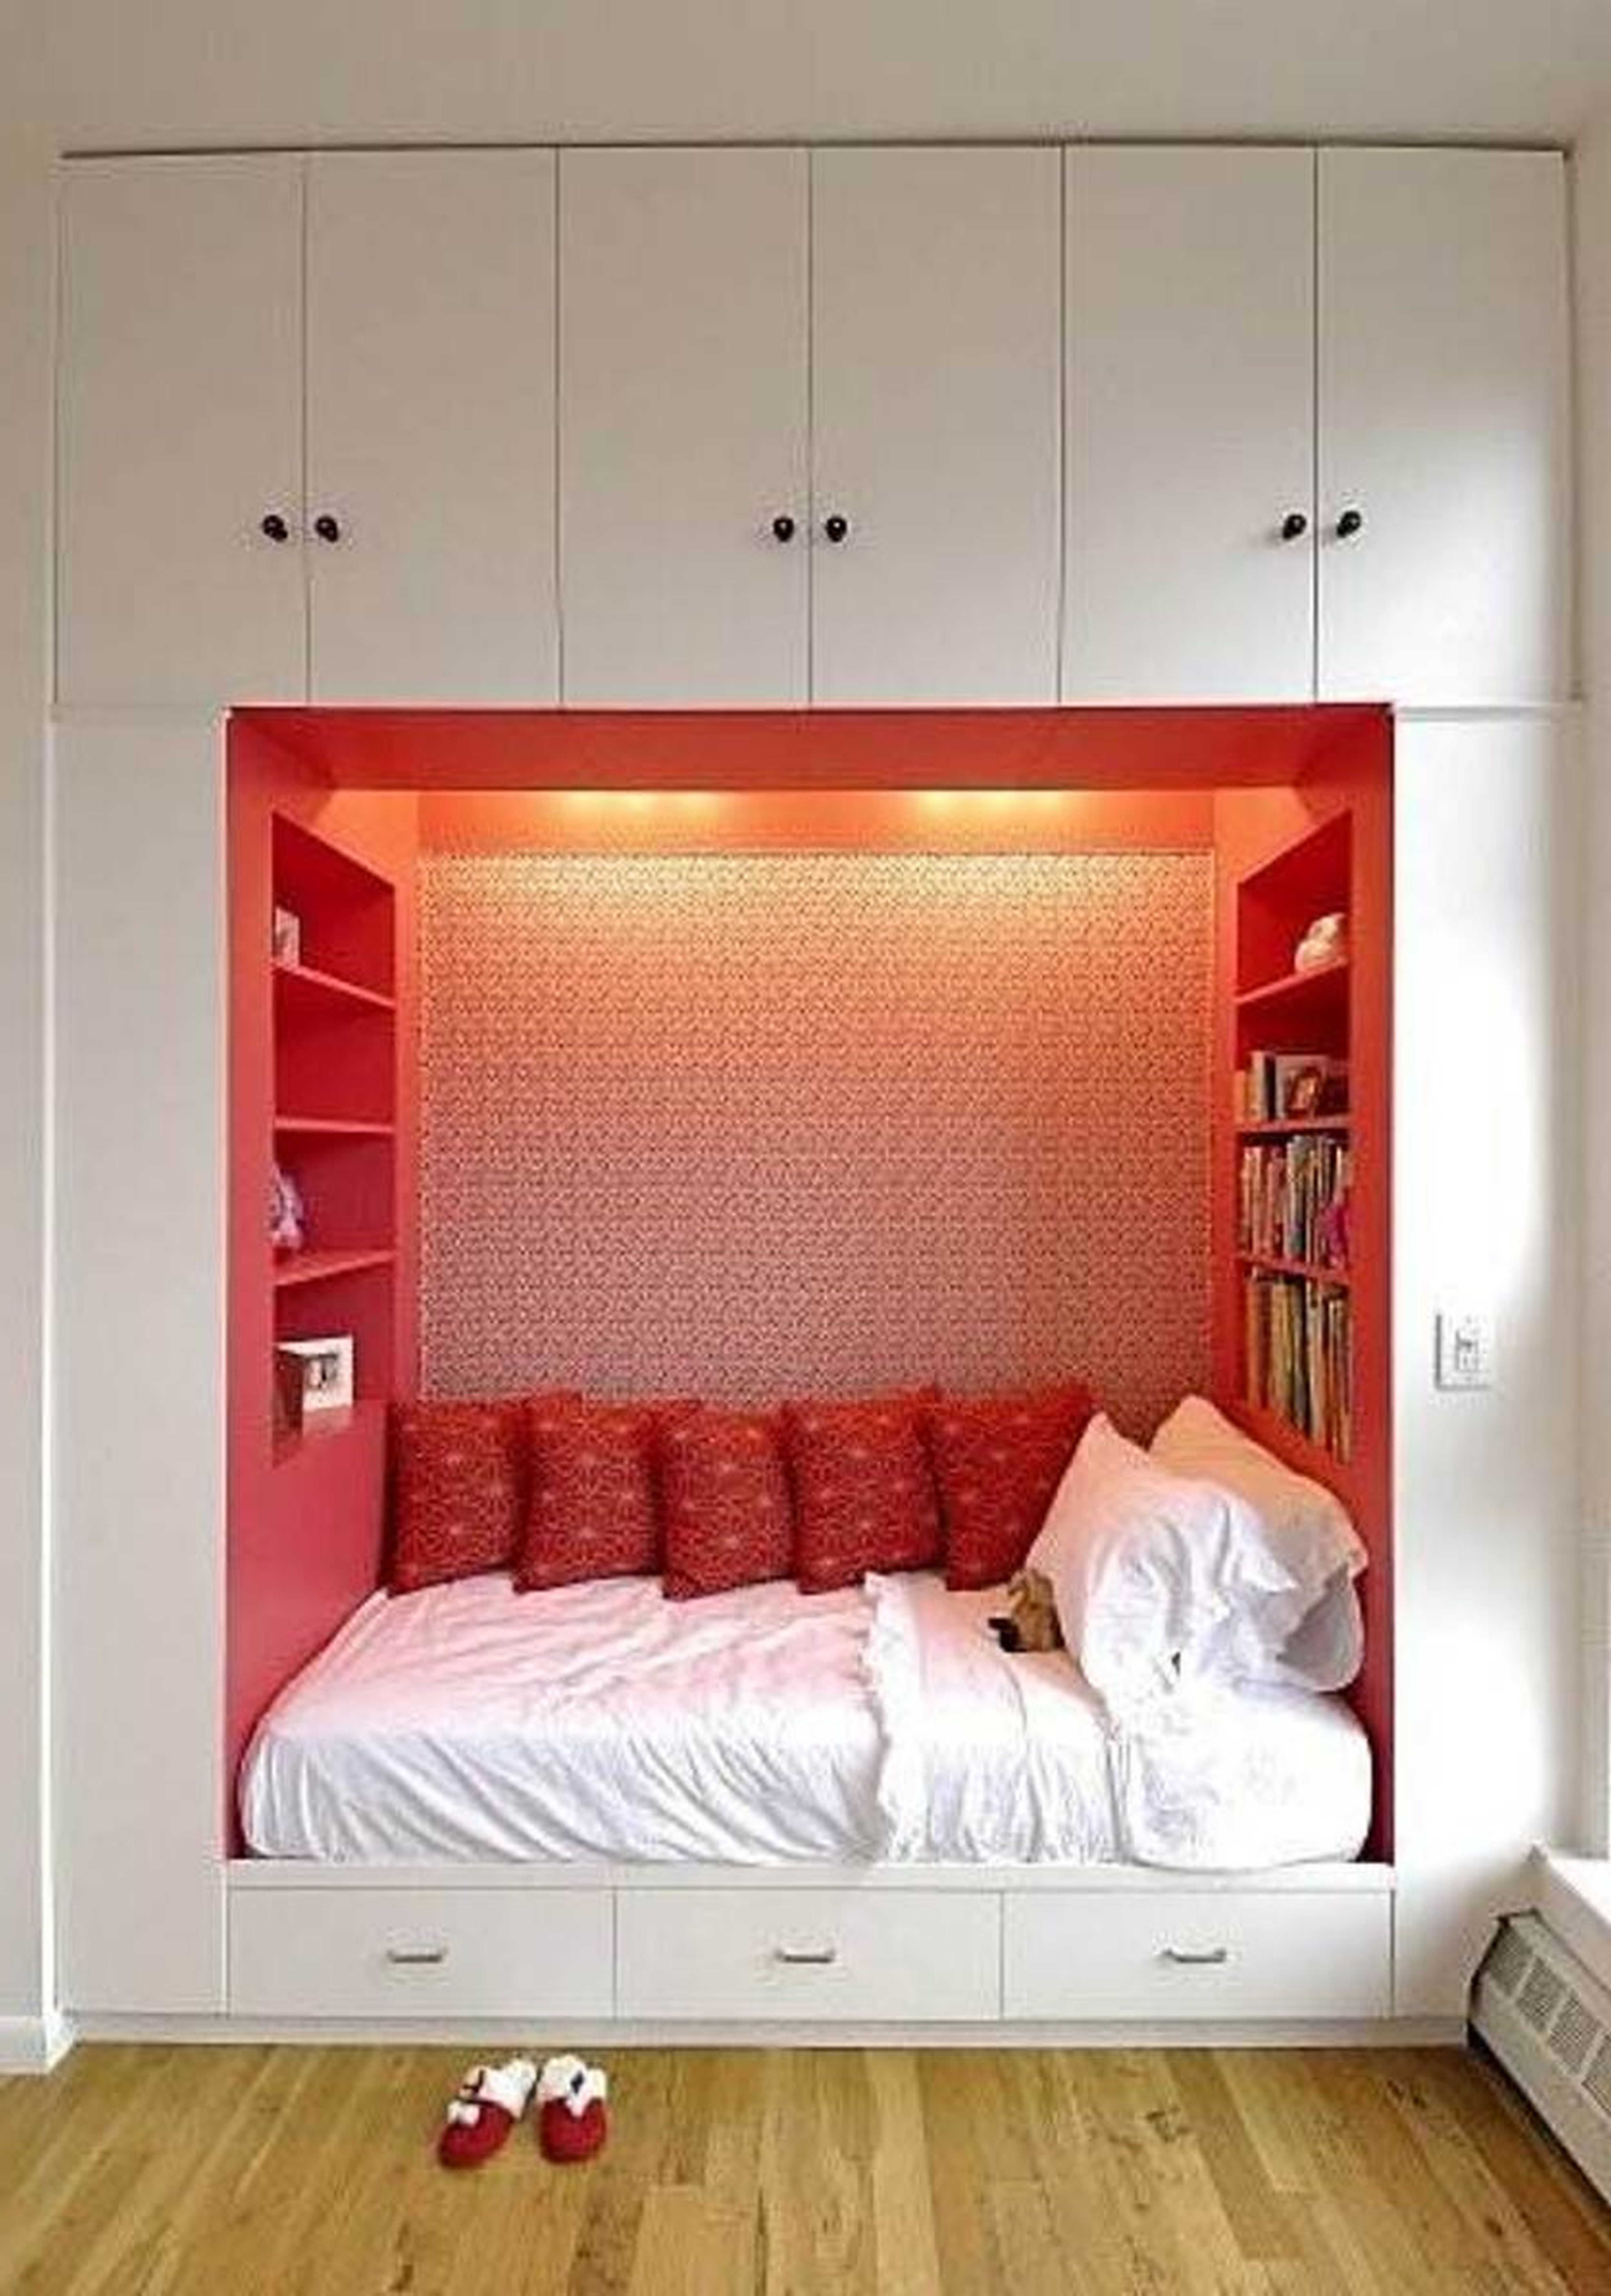 Bedroom Designs For Small Spaces For Couple Remodel Bedroom